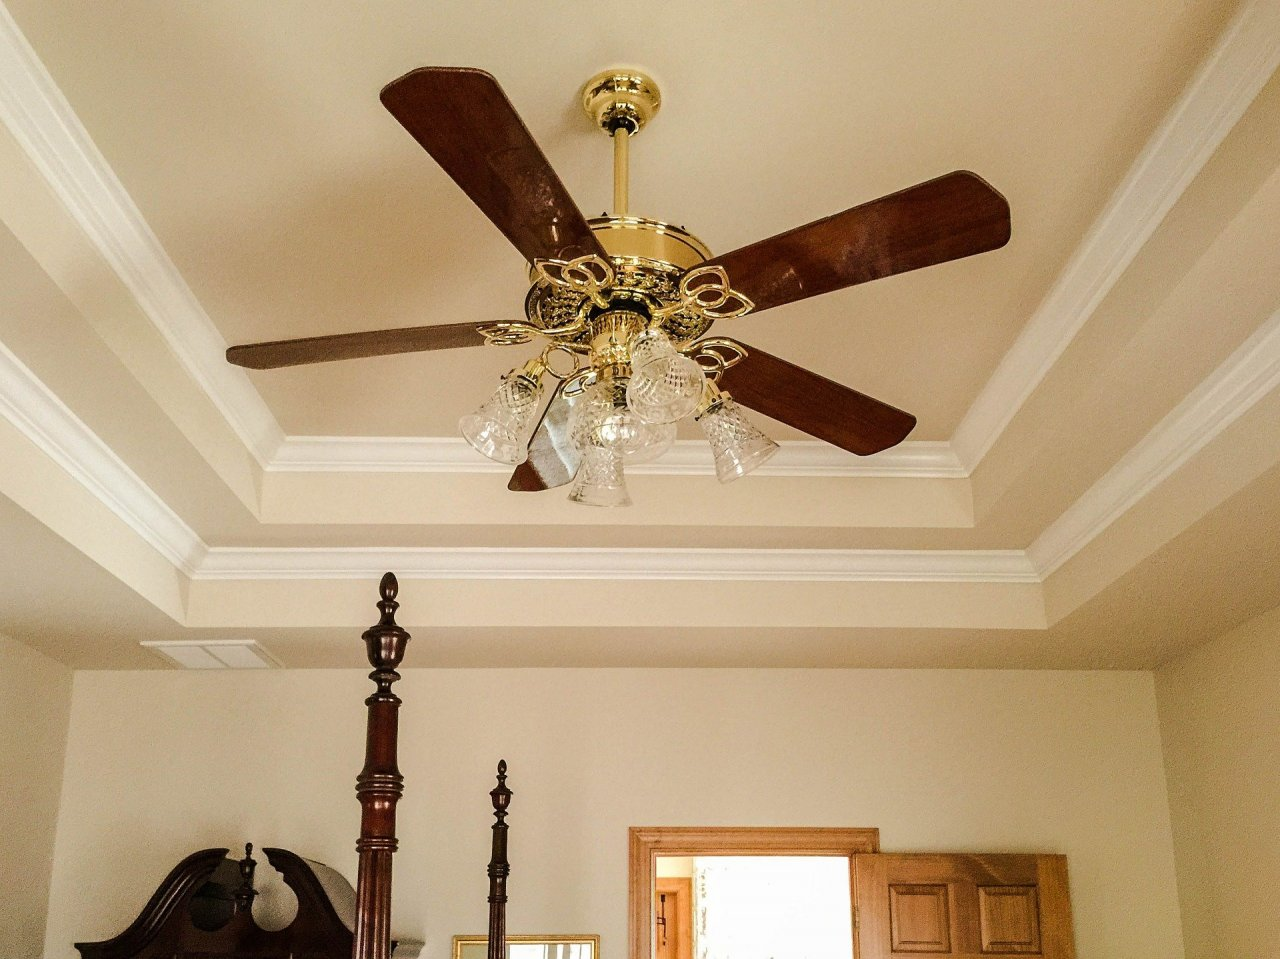 Ceiling Diy Forums Wiring On Fan Motor Systems How To Add A Dimmer And Speed Switch With Lights